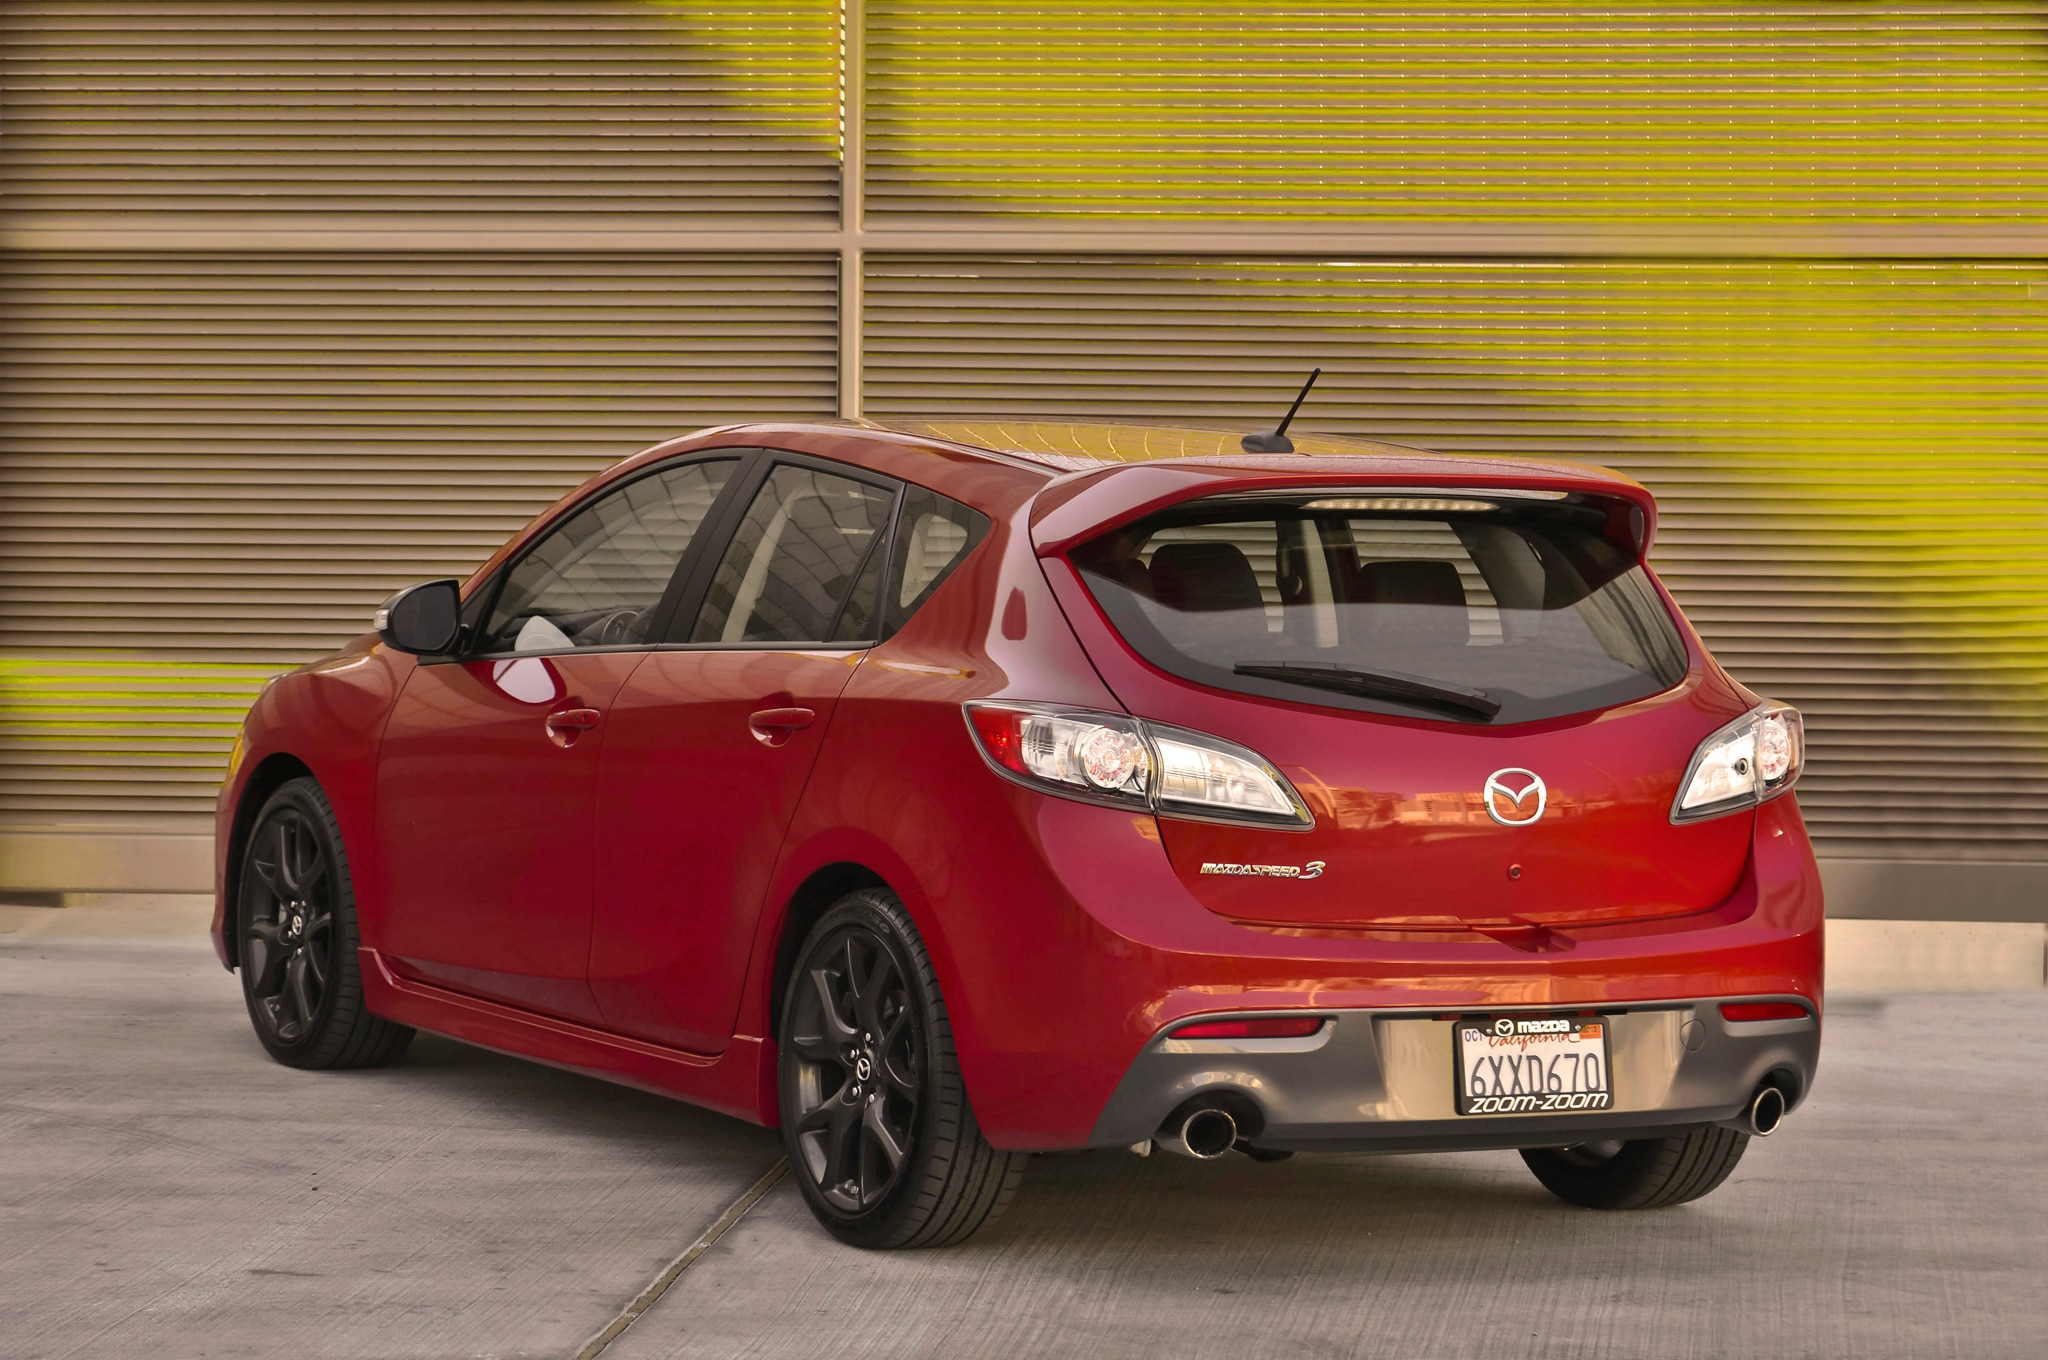 Report Next Mazdaspeed 3 Coming in 2016 with 300 HP AllWheel Drive